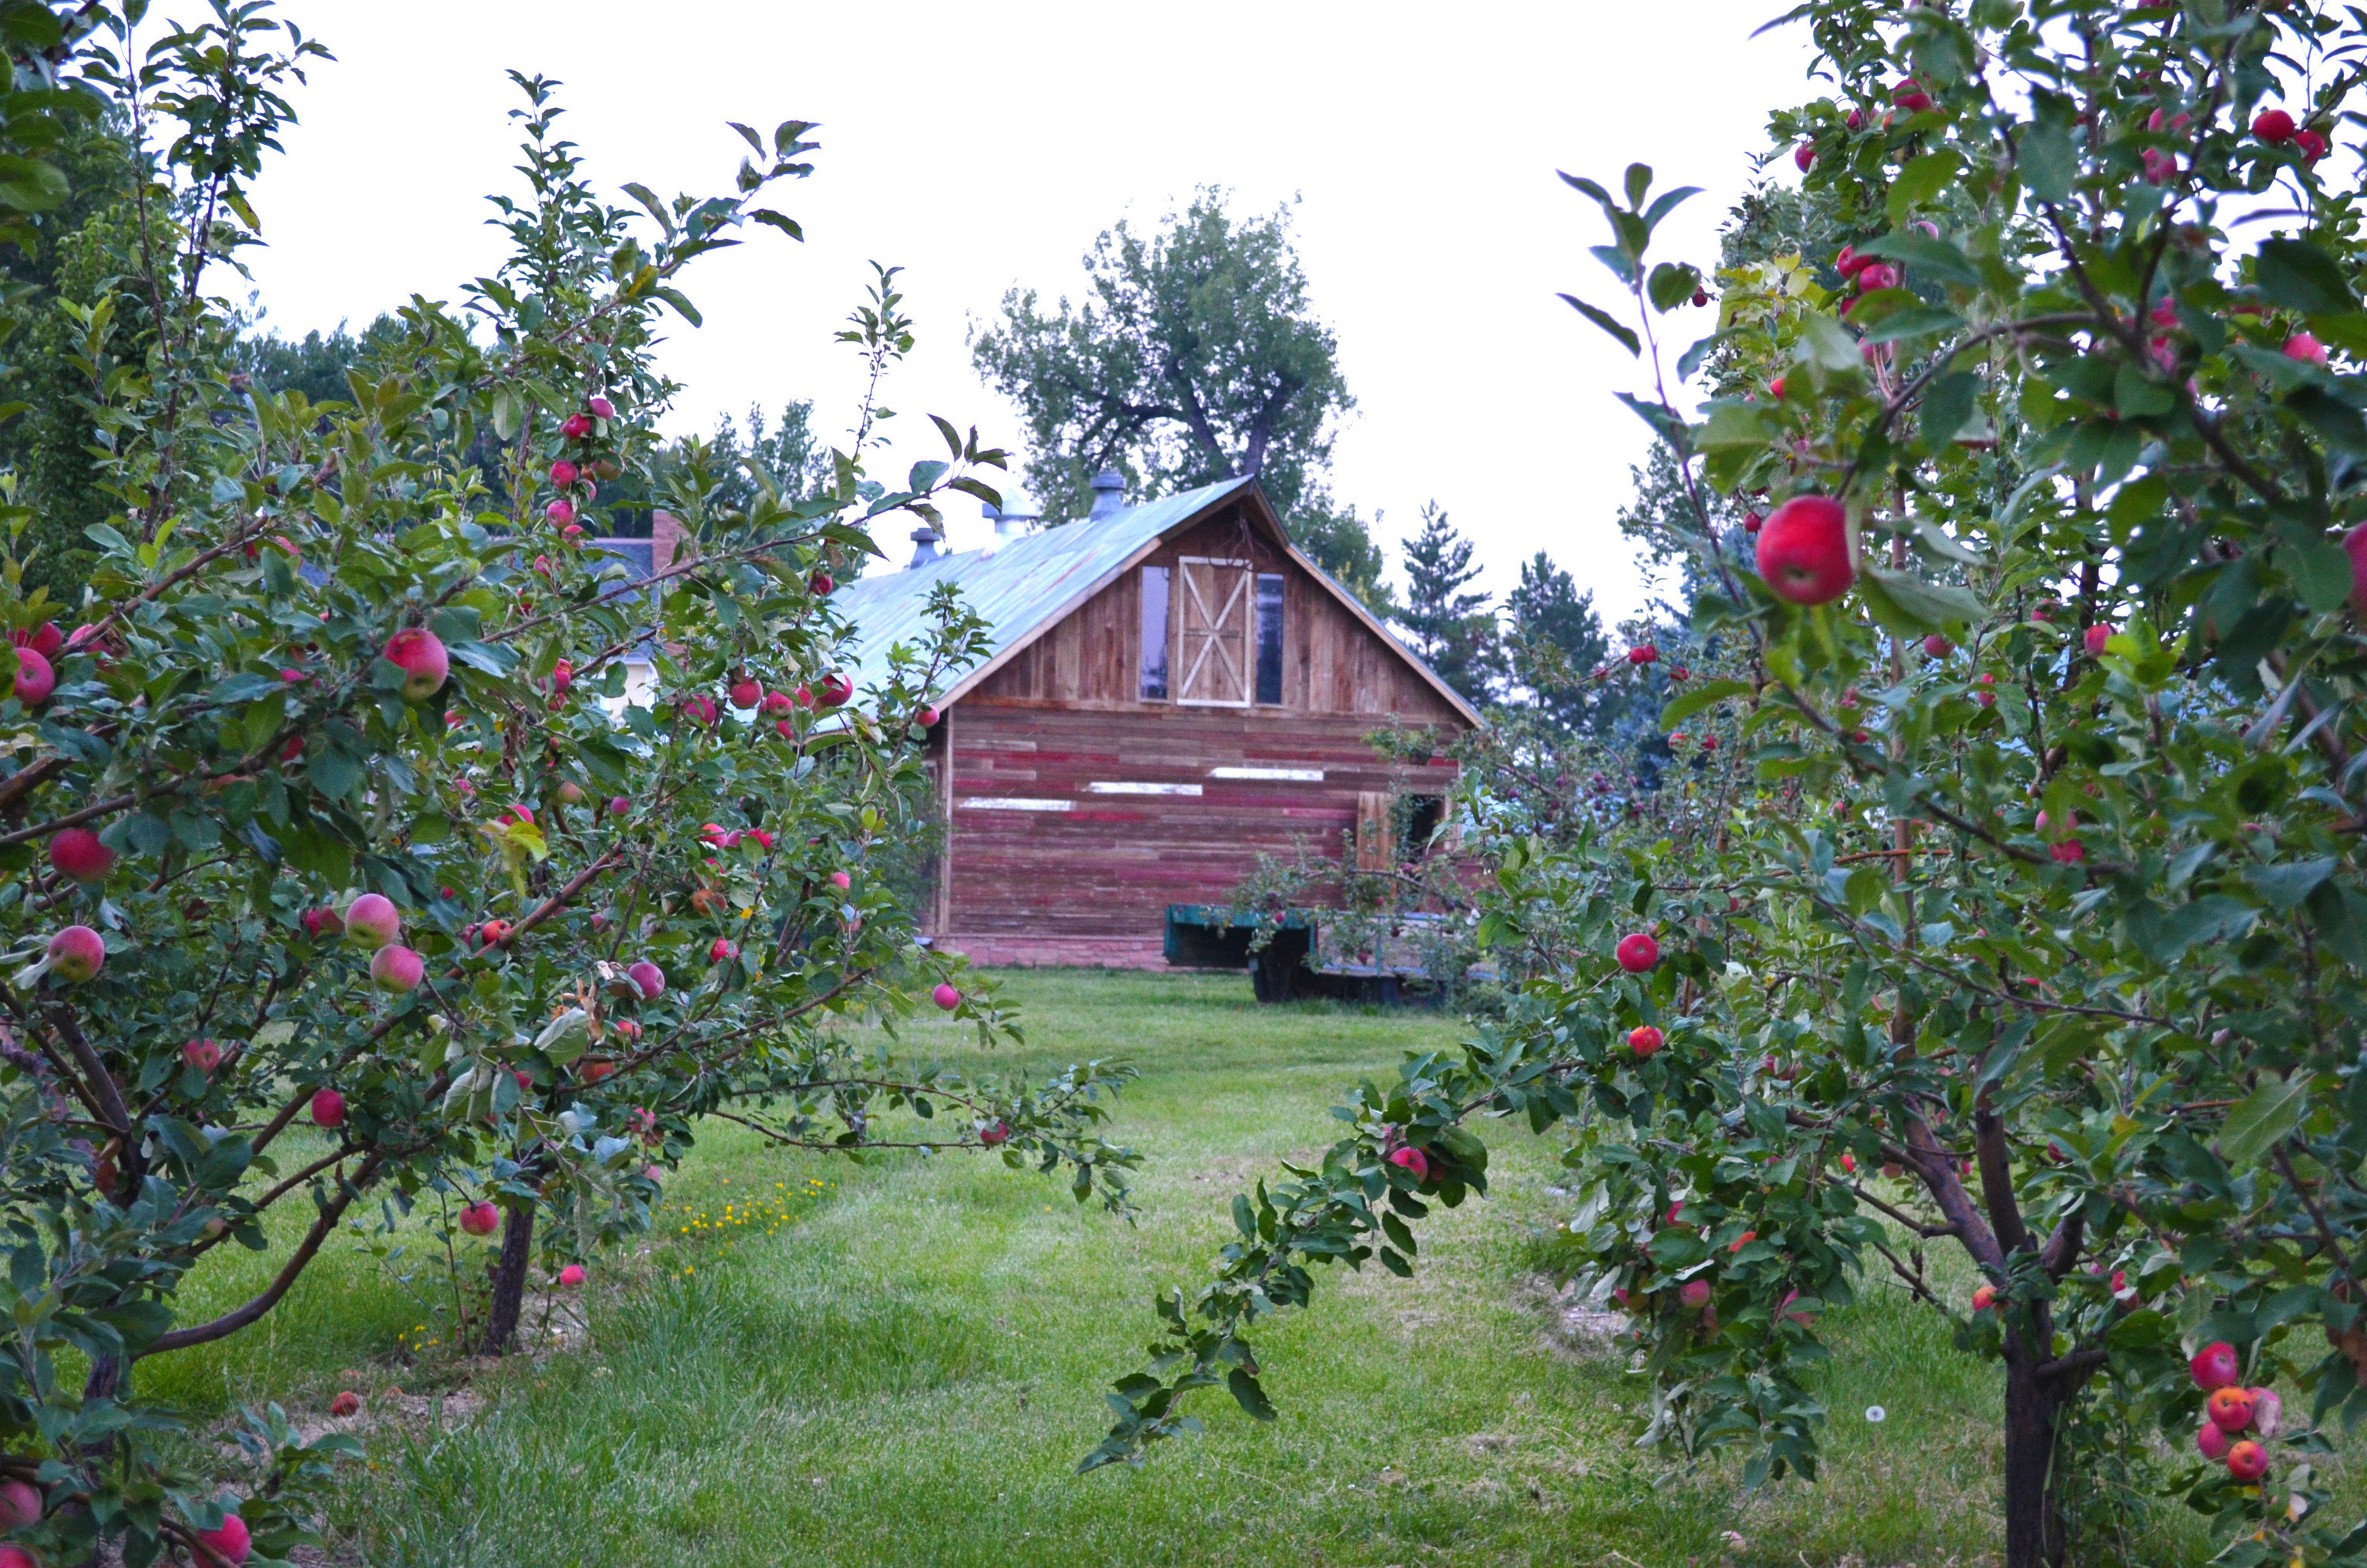 The Best Places To Go Apple Picking In The U S And Where To Stay